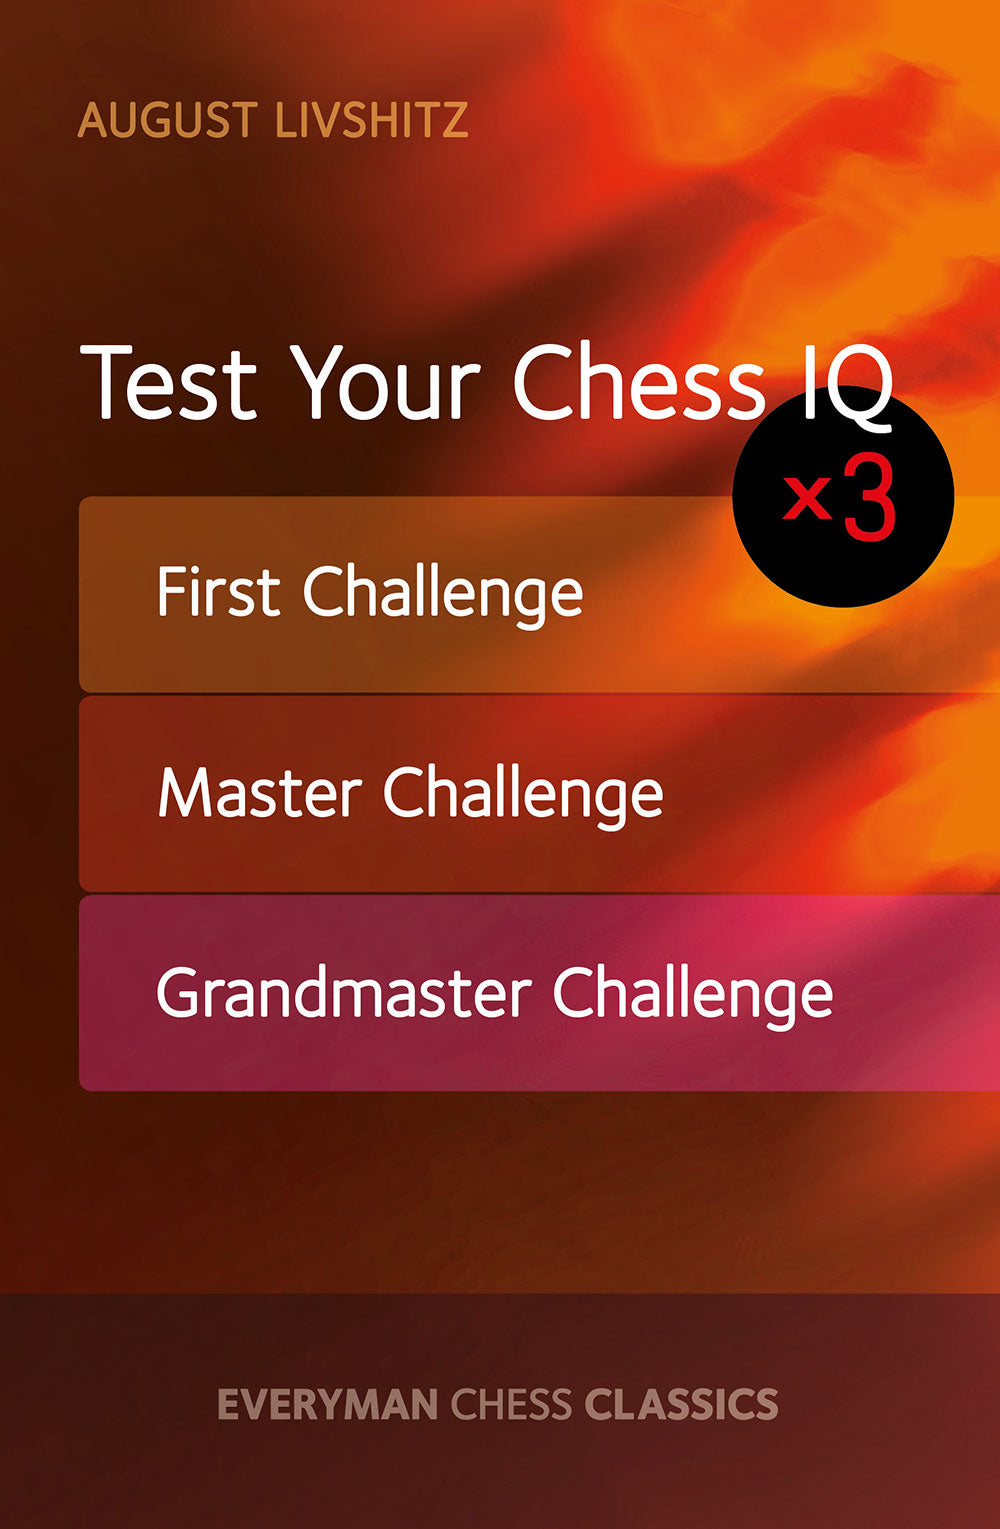 Test Your Chess front cover